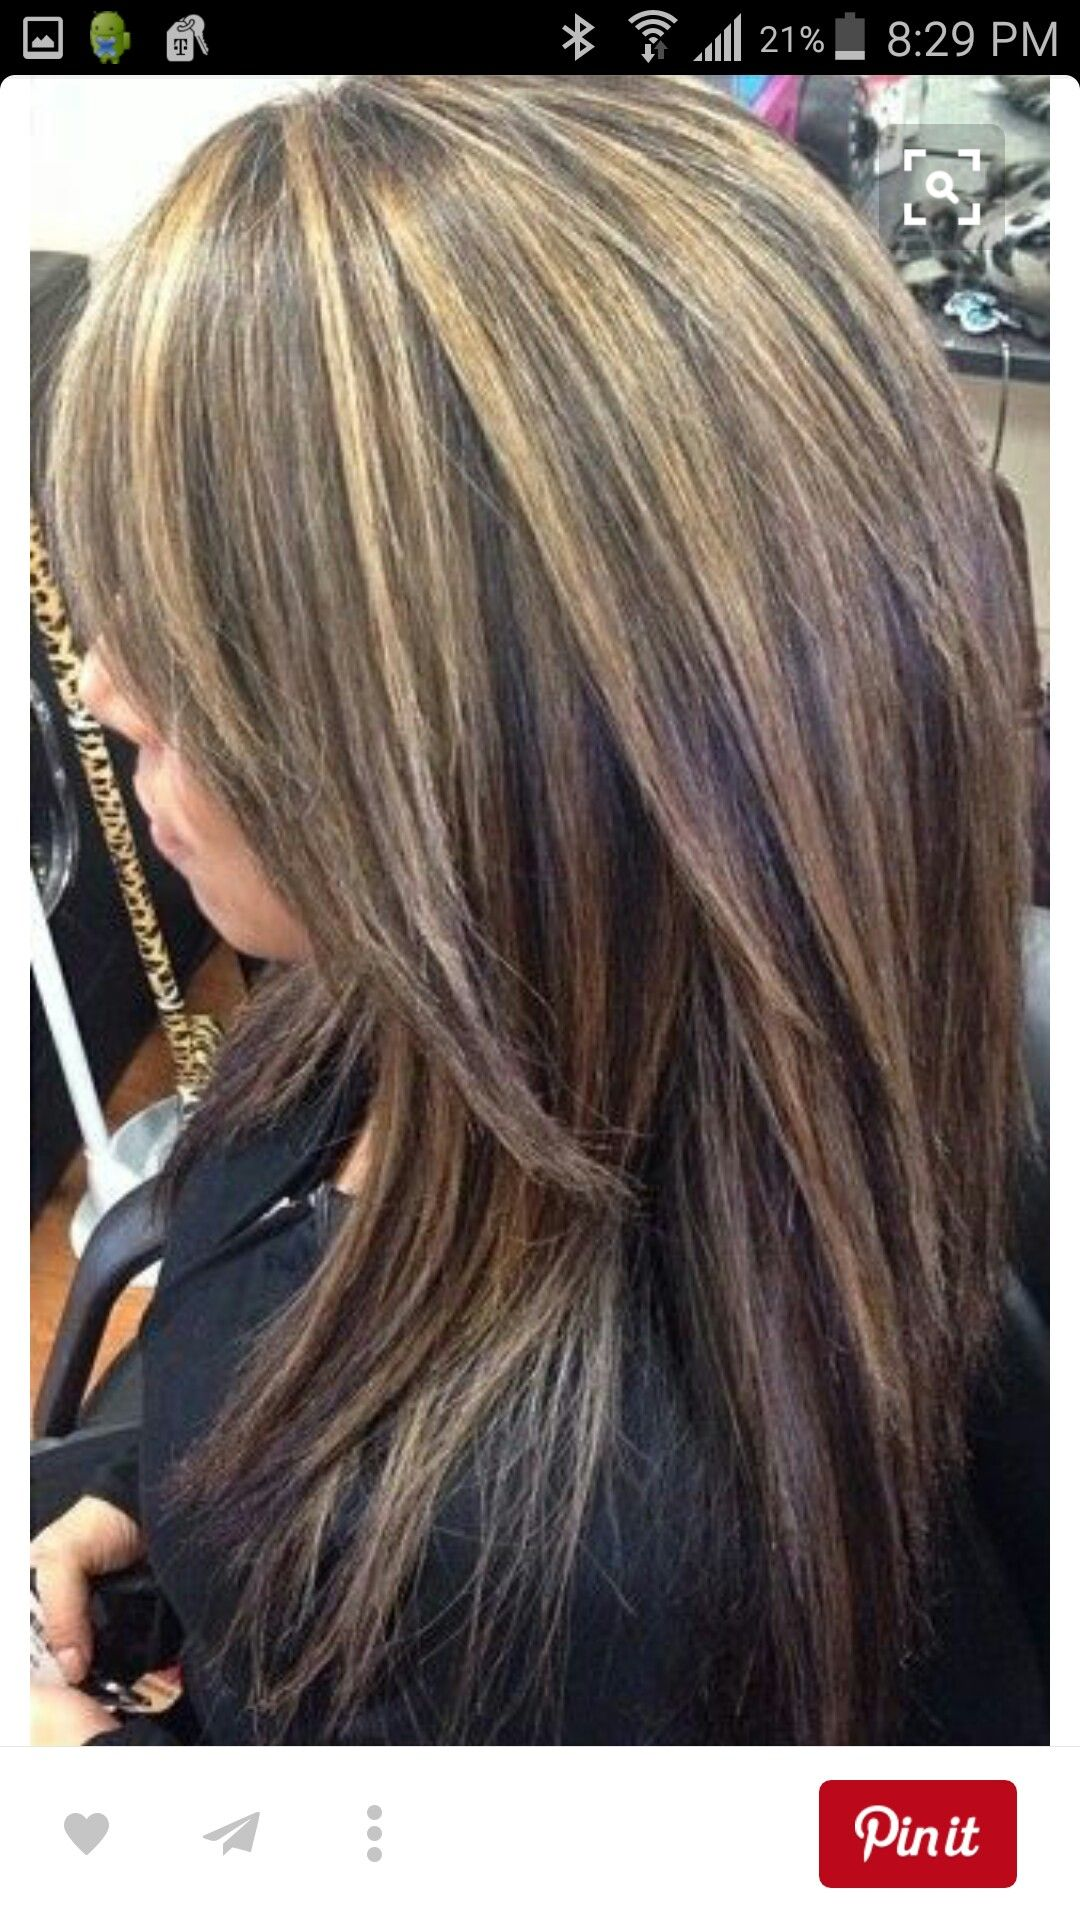 Pin by Jennifer Bedsole on Hair